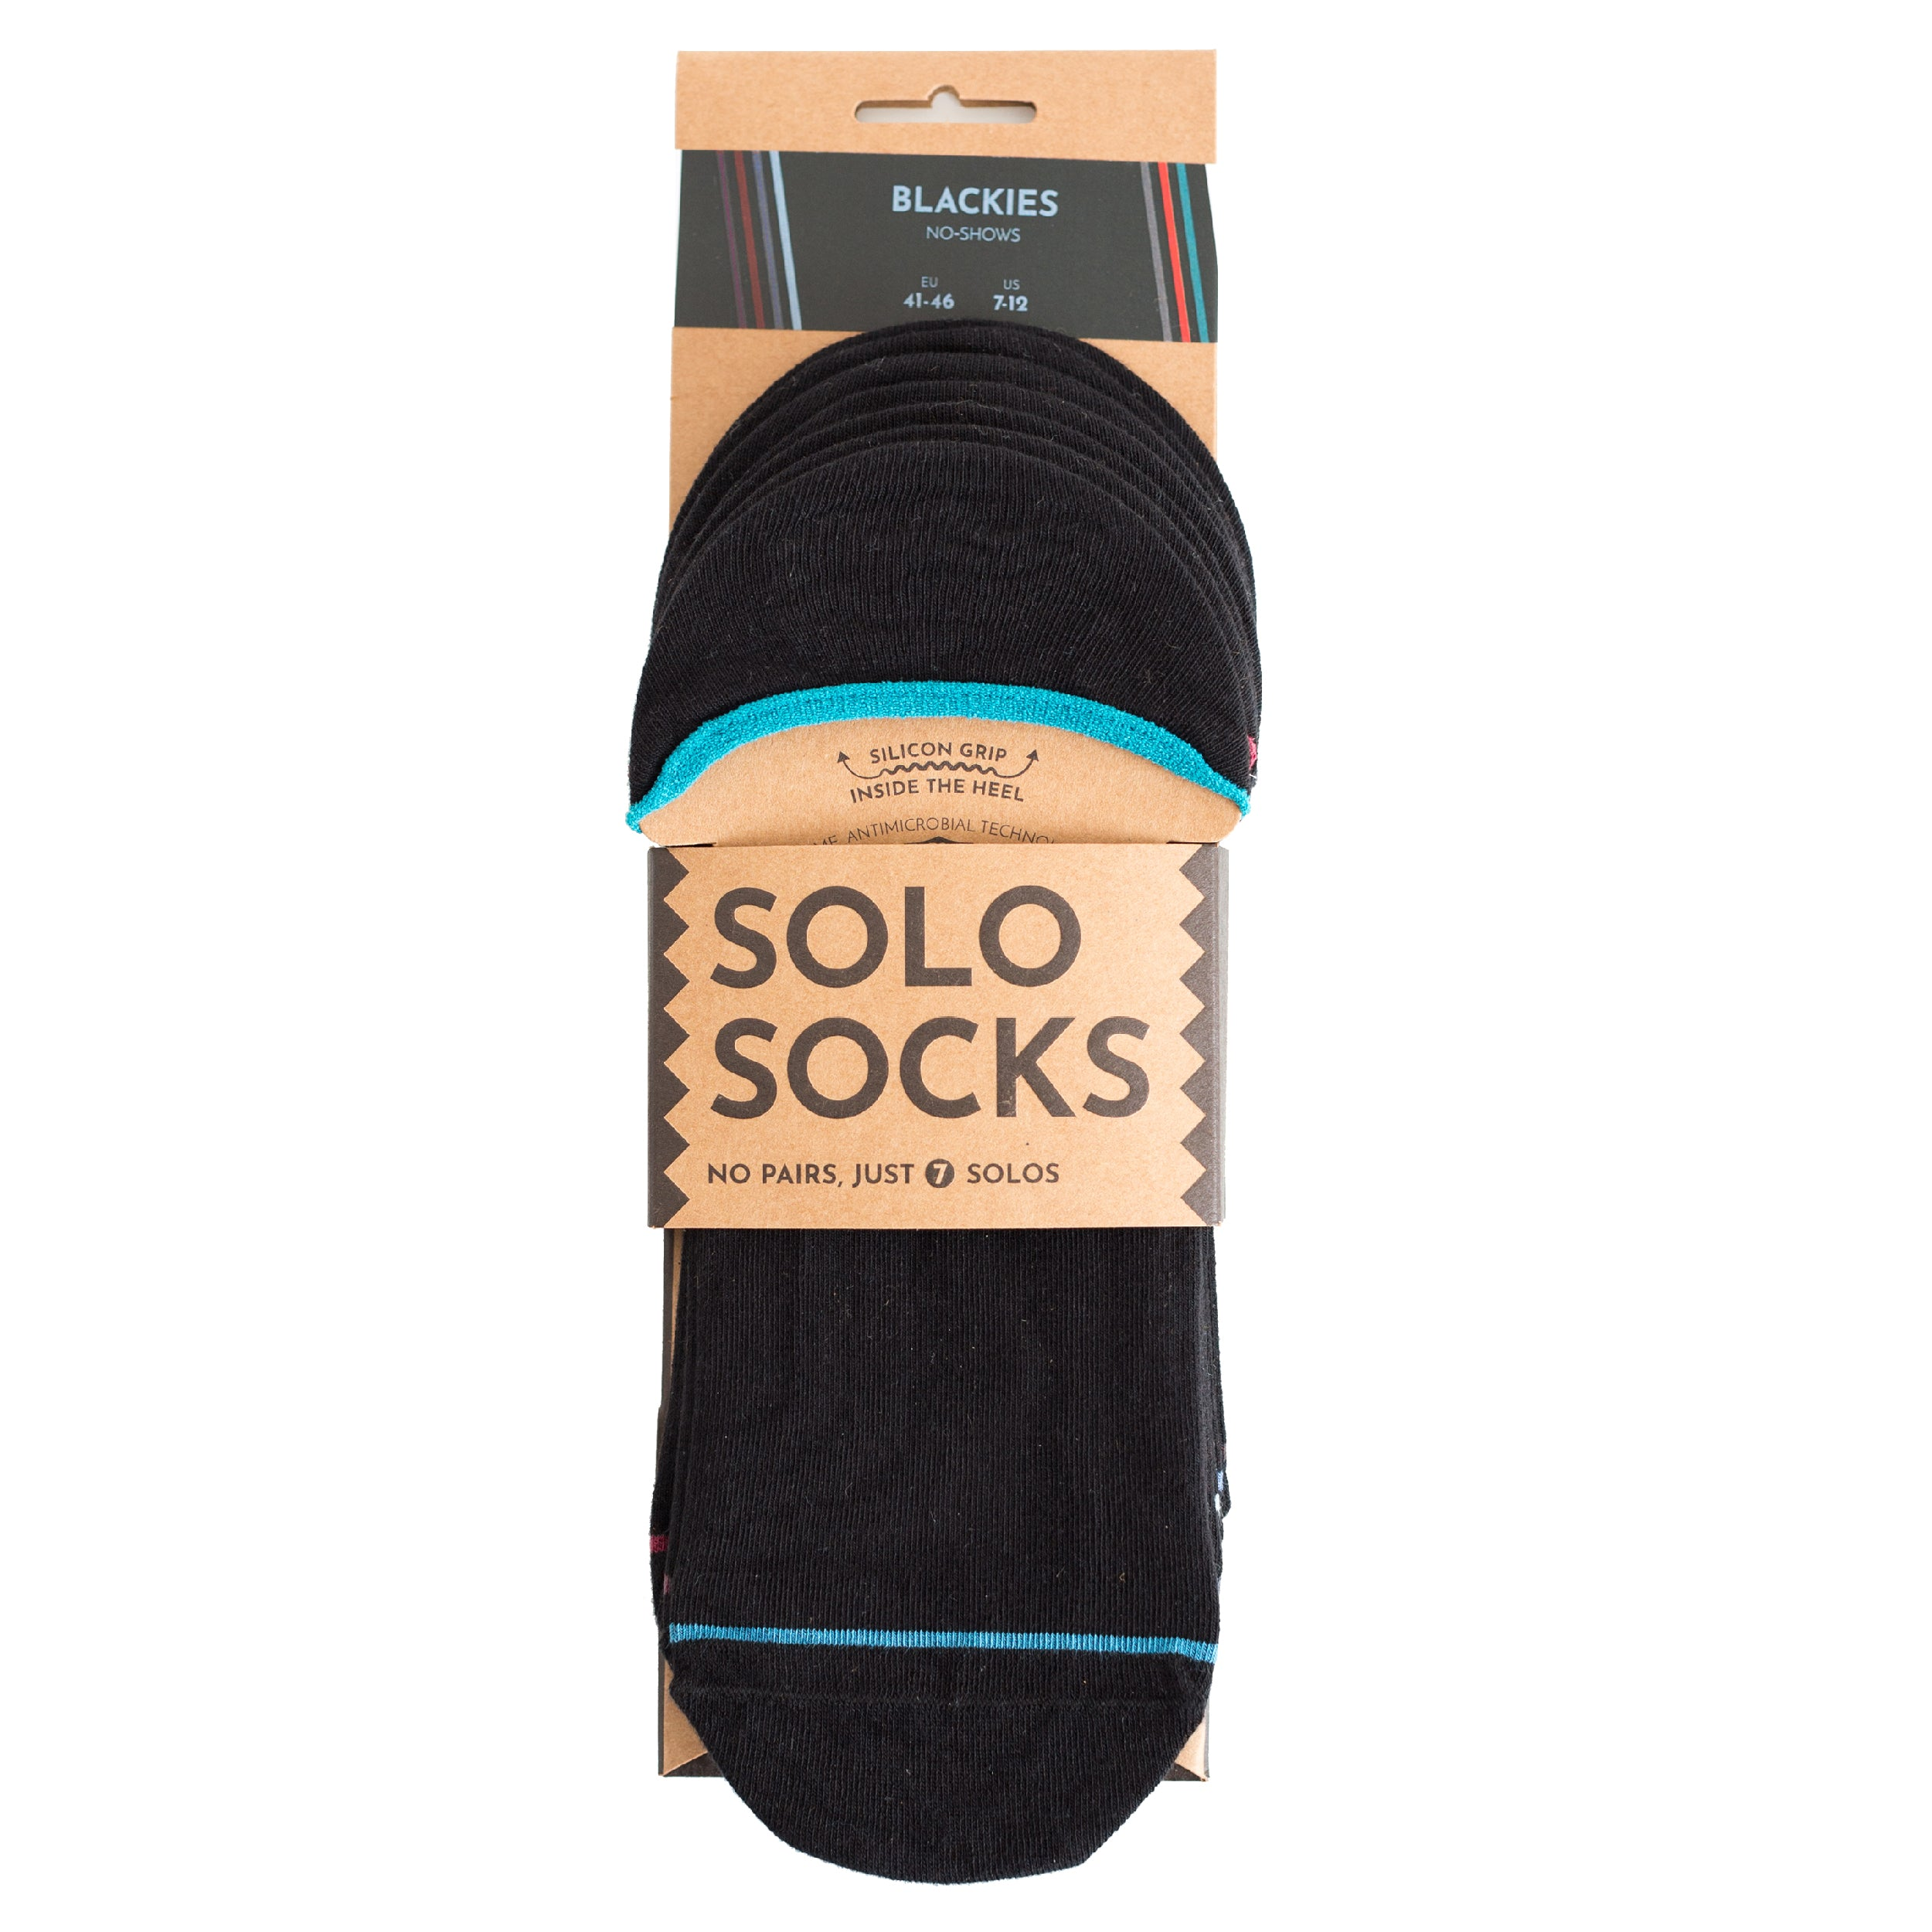 Blackies No-Shows - A pack of 7x1 organic cotton no-show ankle sneaker socks designed to mix & match. Made by SOLOSOCKS™ of Denmark. Sustainable black Danish design socks for men and women| High quality but cheap and durable fashion socks | Worldwide delivery | Free shipping above €40 | Reduce textile waste by 41%